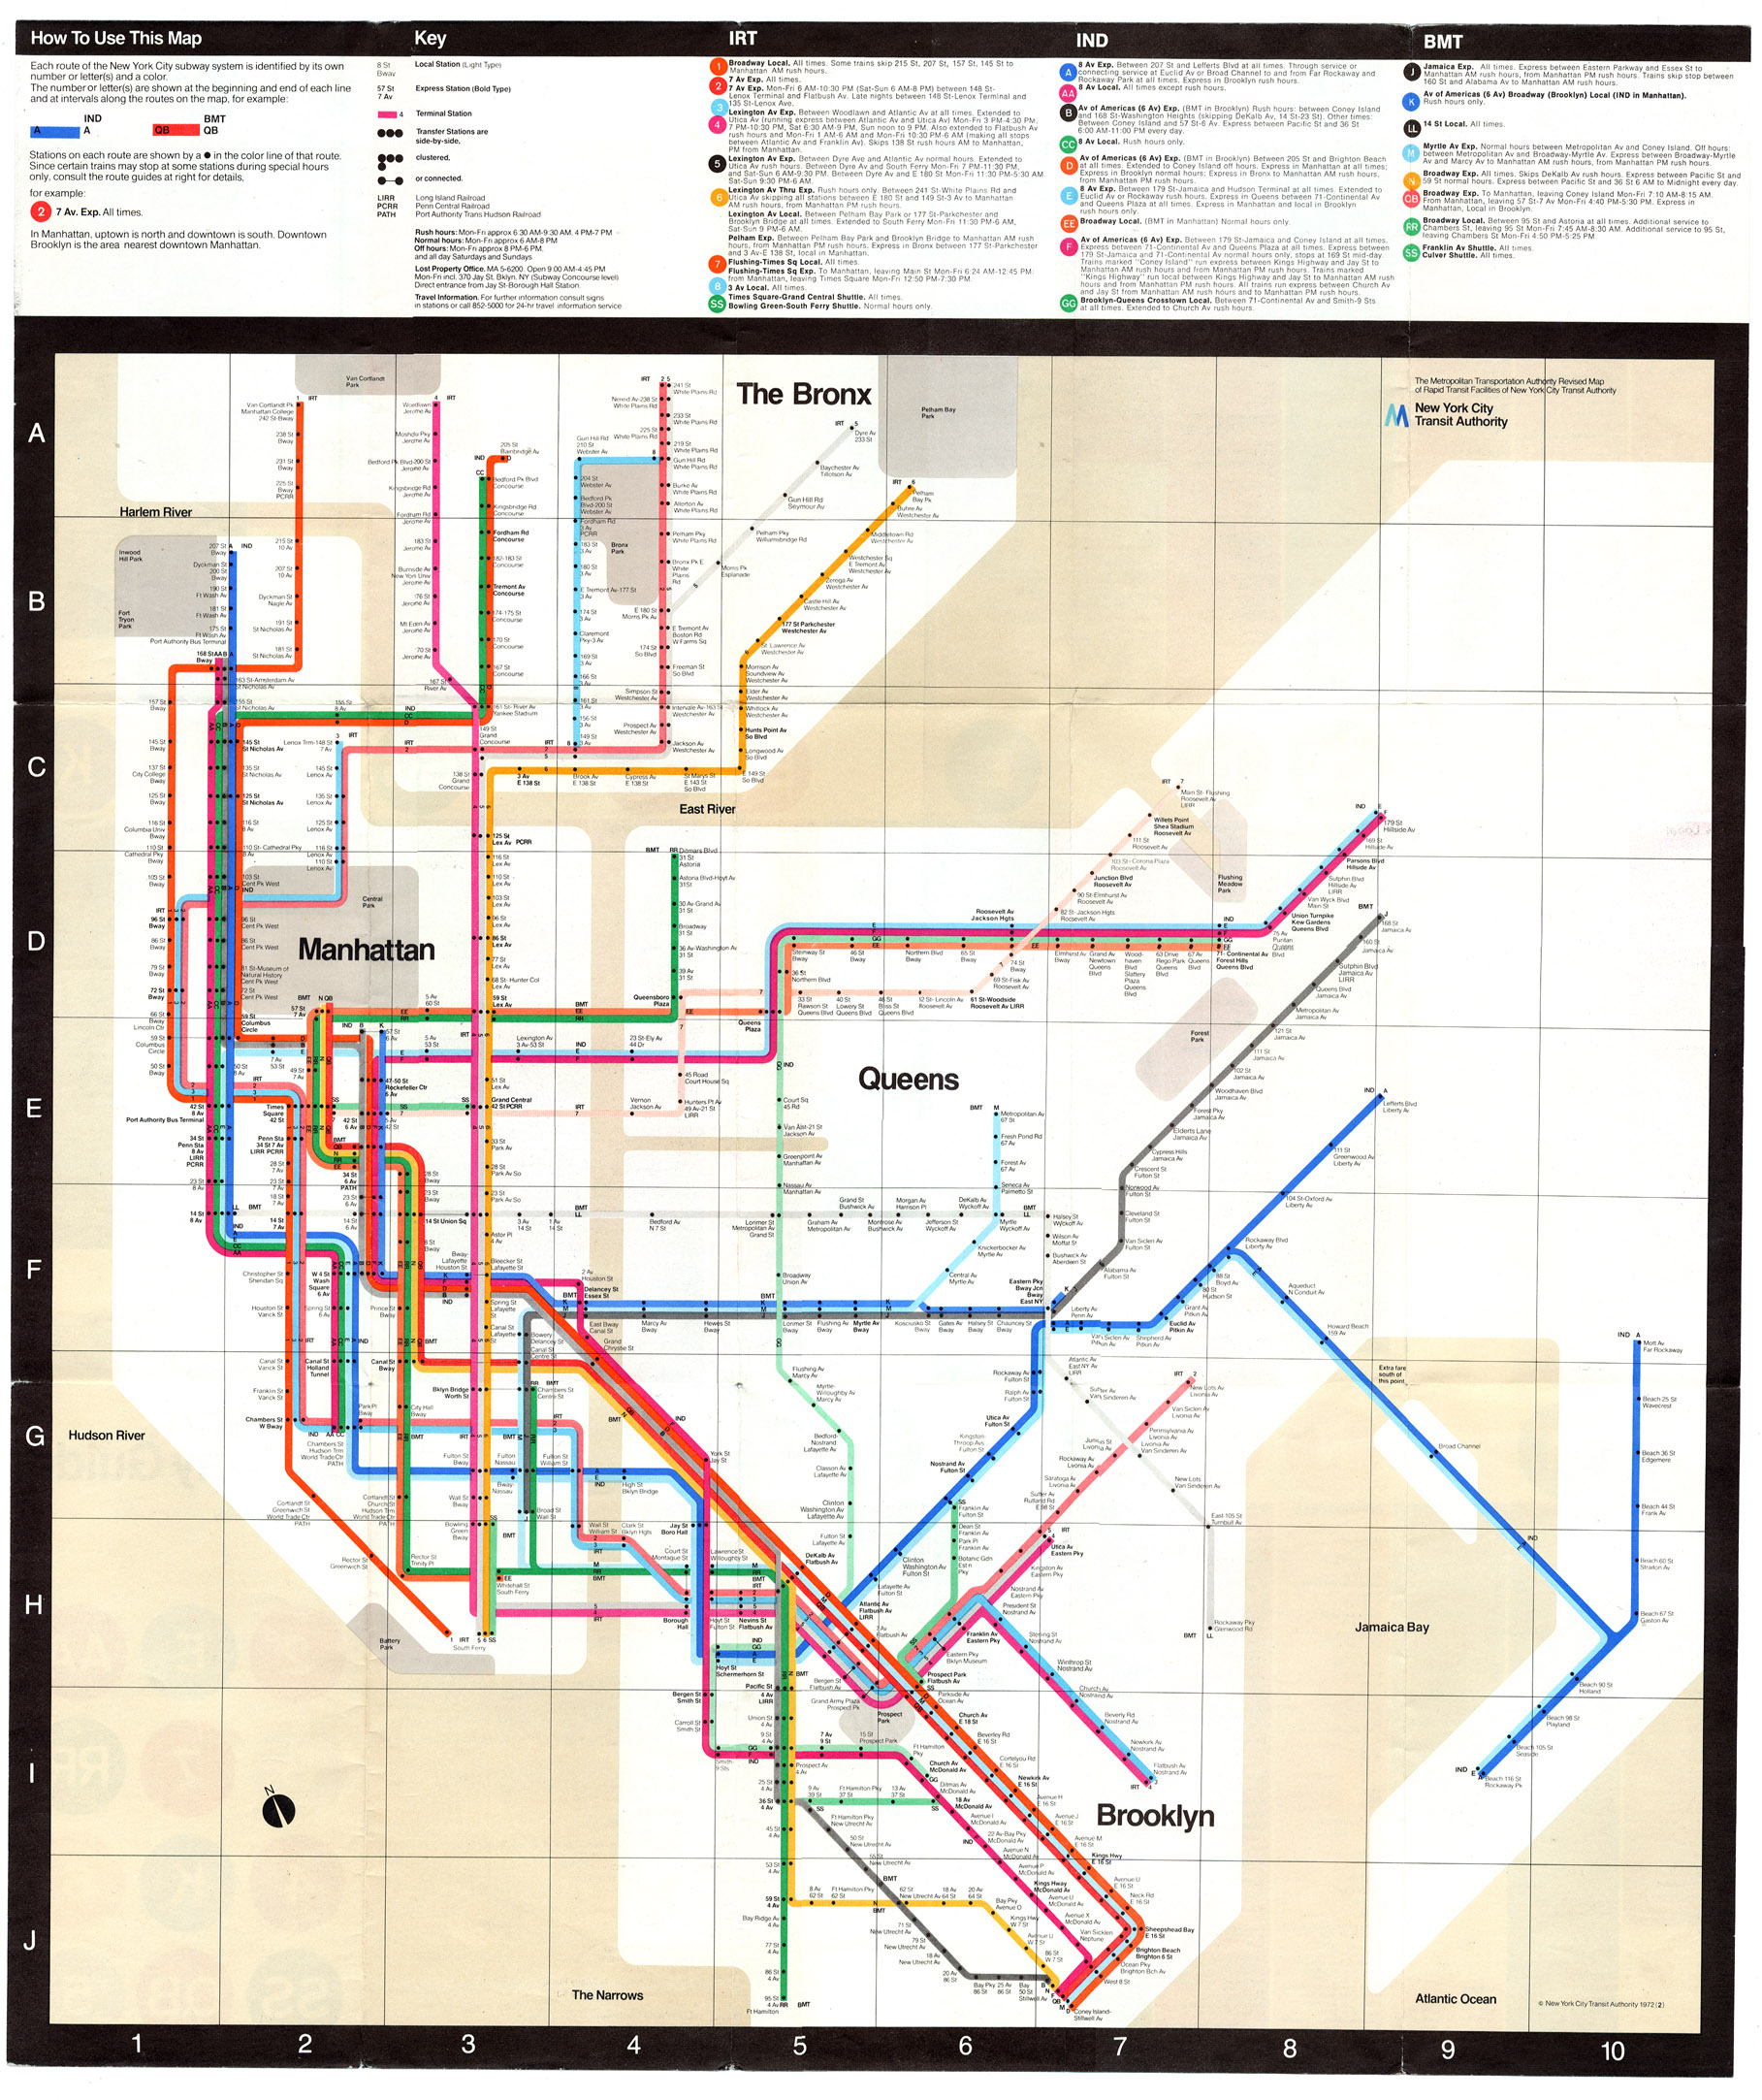 Ideal Nyc Subway Map Efficient.Coudal Archives Maps And Travel